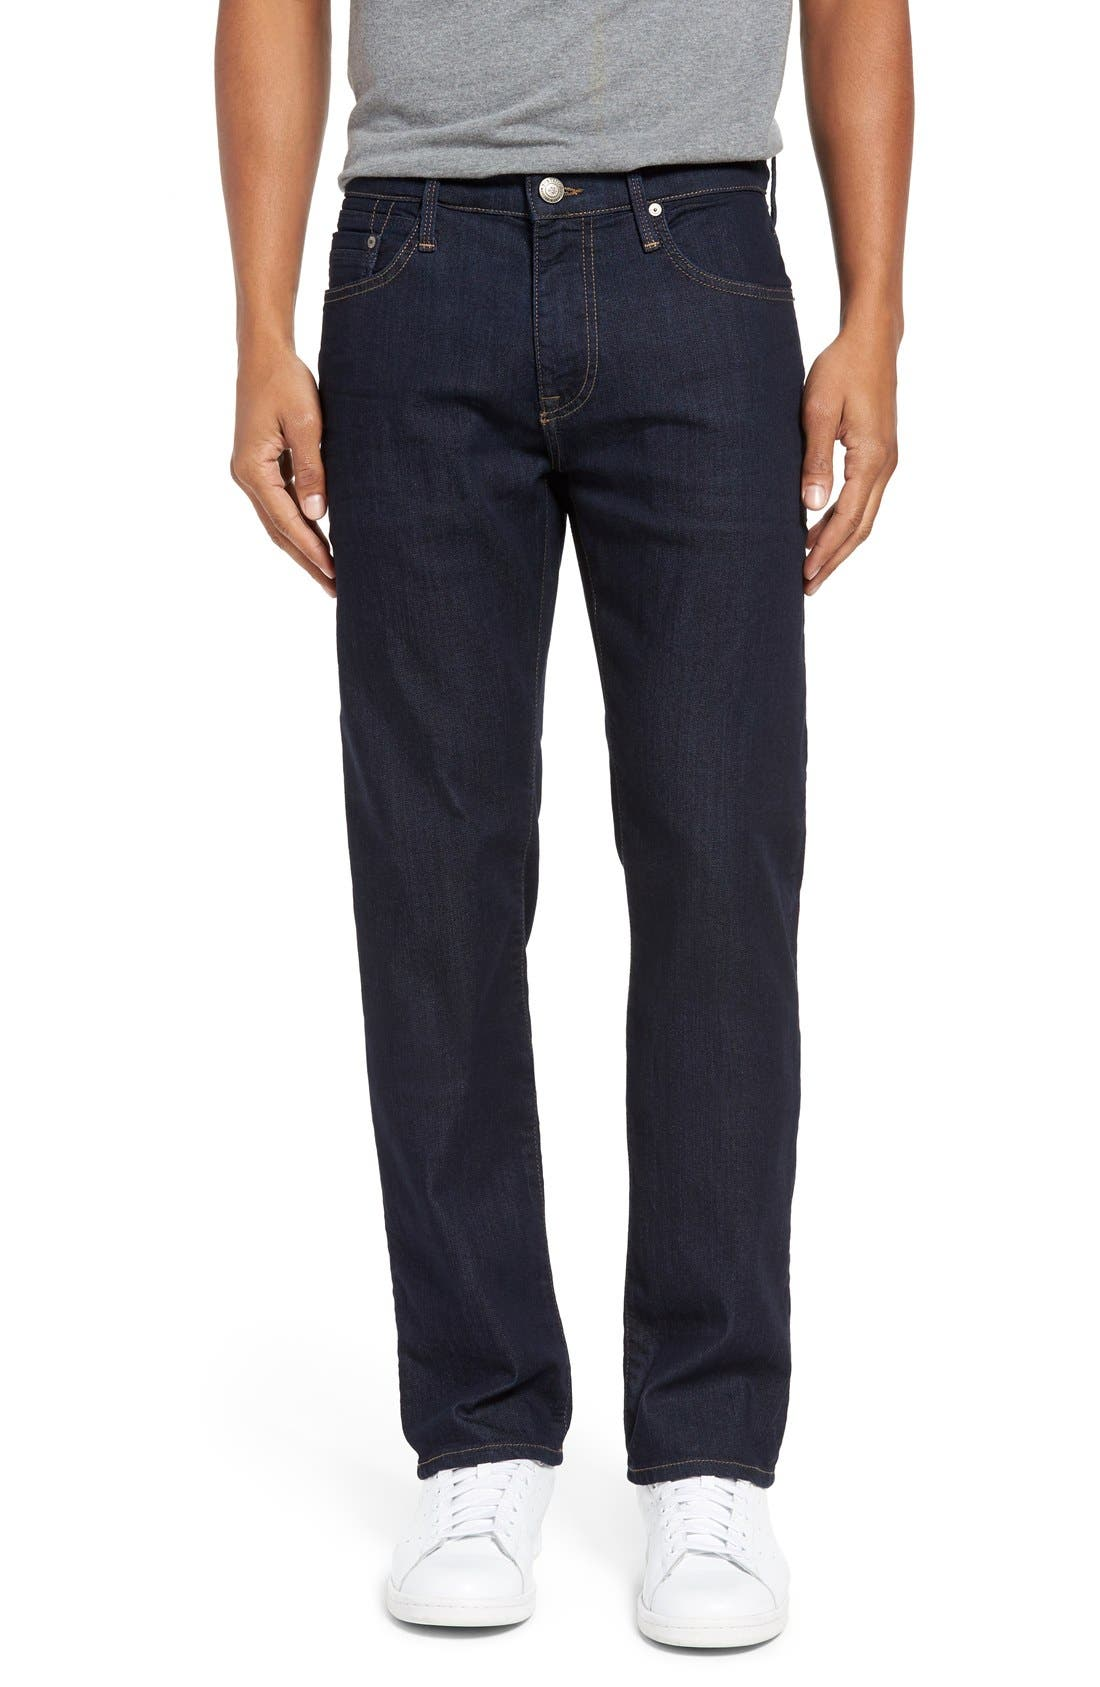 'Zach' Straight Leg Jeans,                             Main thumbnail 1, color,                             RINSE PORTLAND